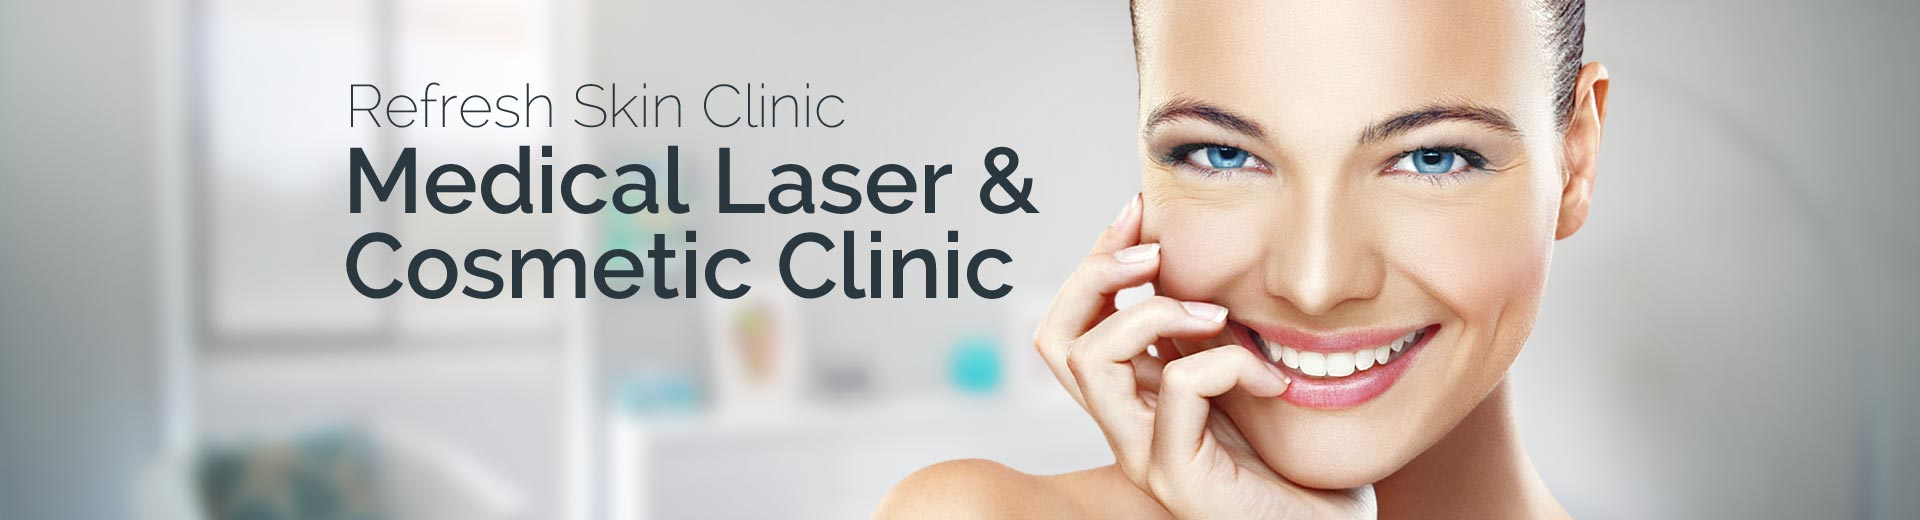 Refresh Skin Clinic Bendigo medical laser & cosmetic clinic - offering permanent hair removal botox beauty anti aging